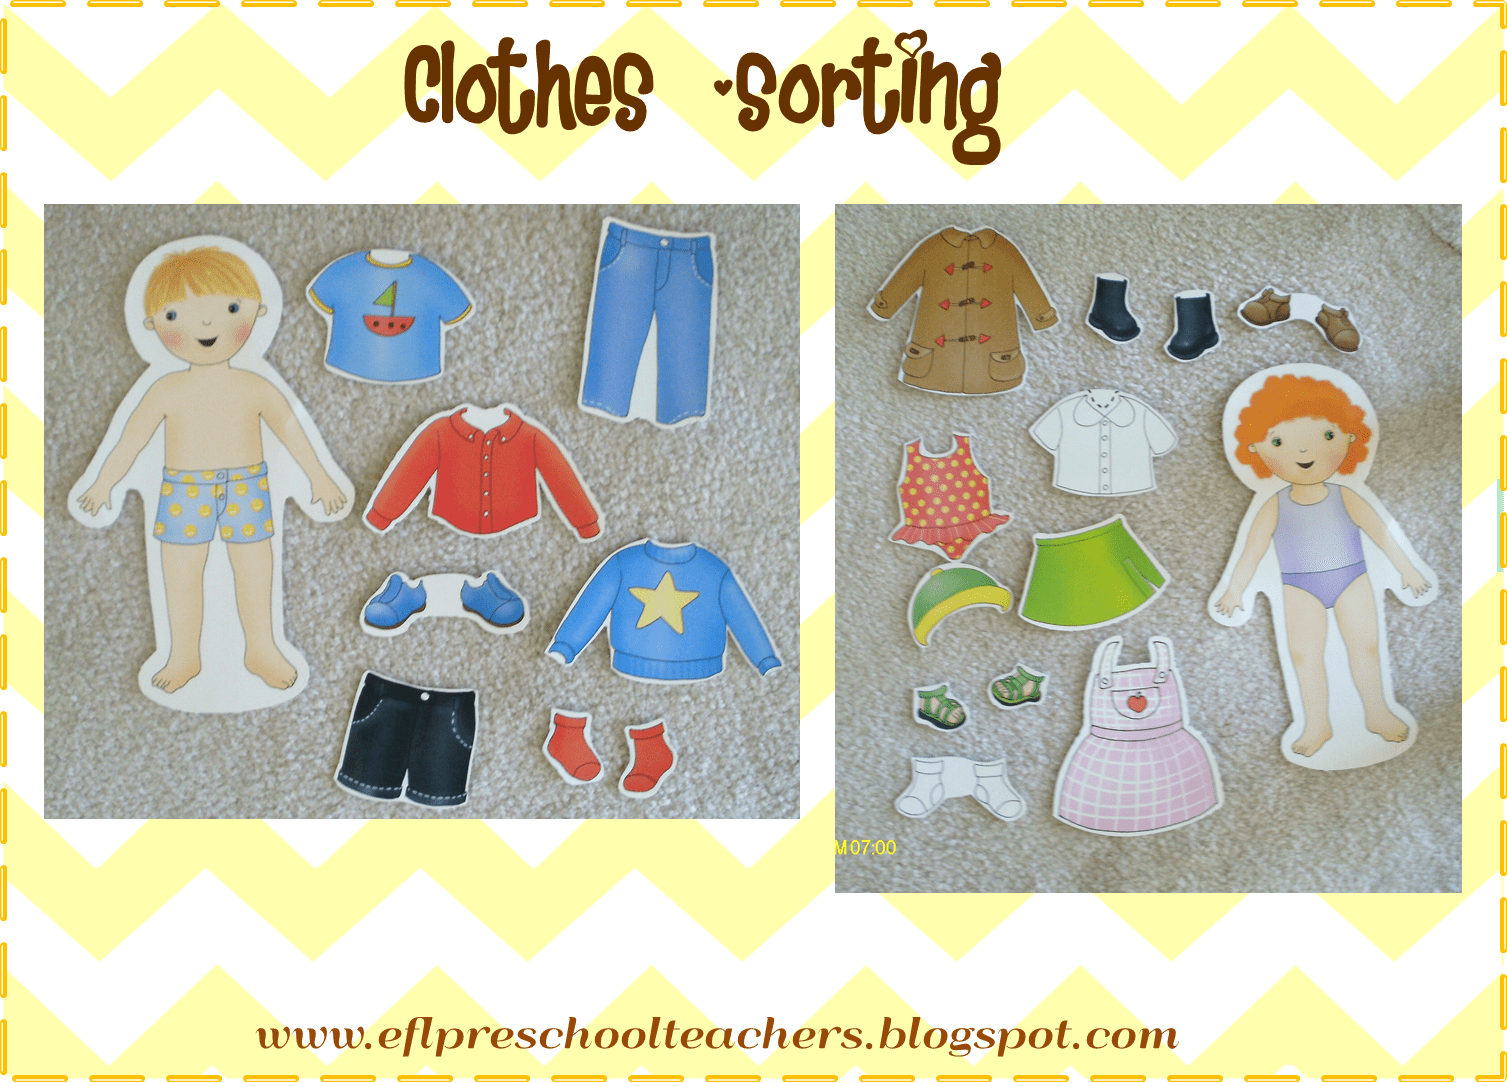 Esl Efl Preschool Teachers Clothes Theme